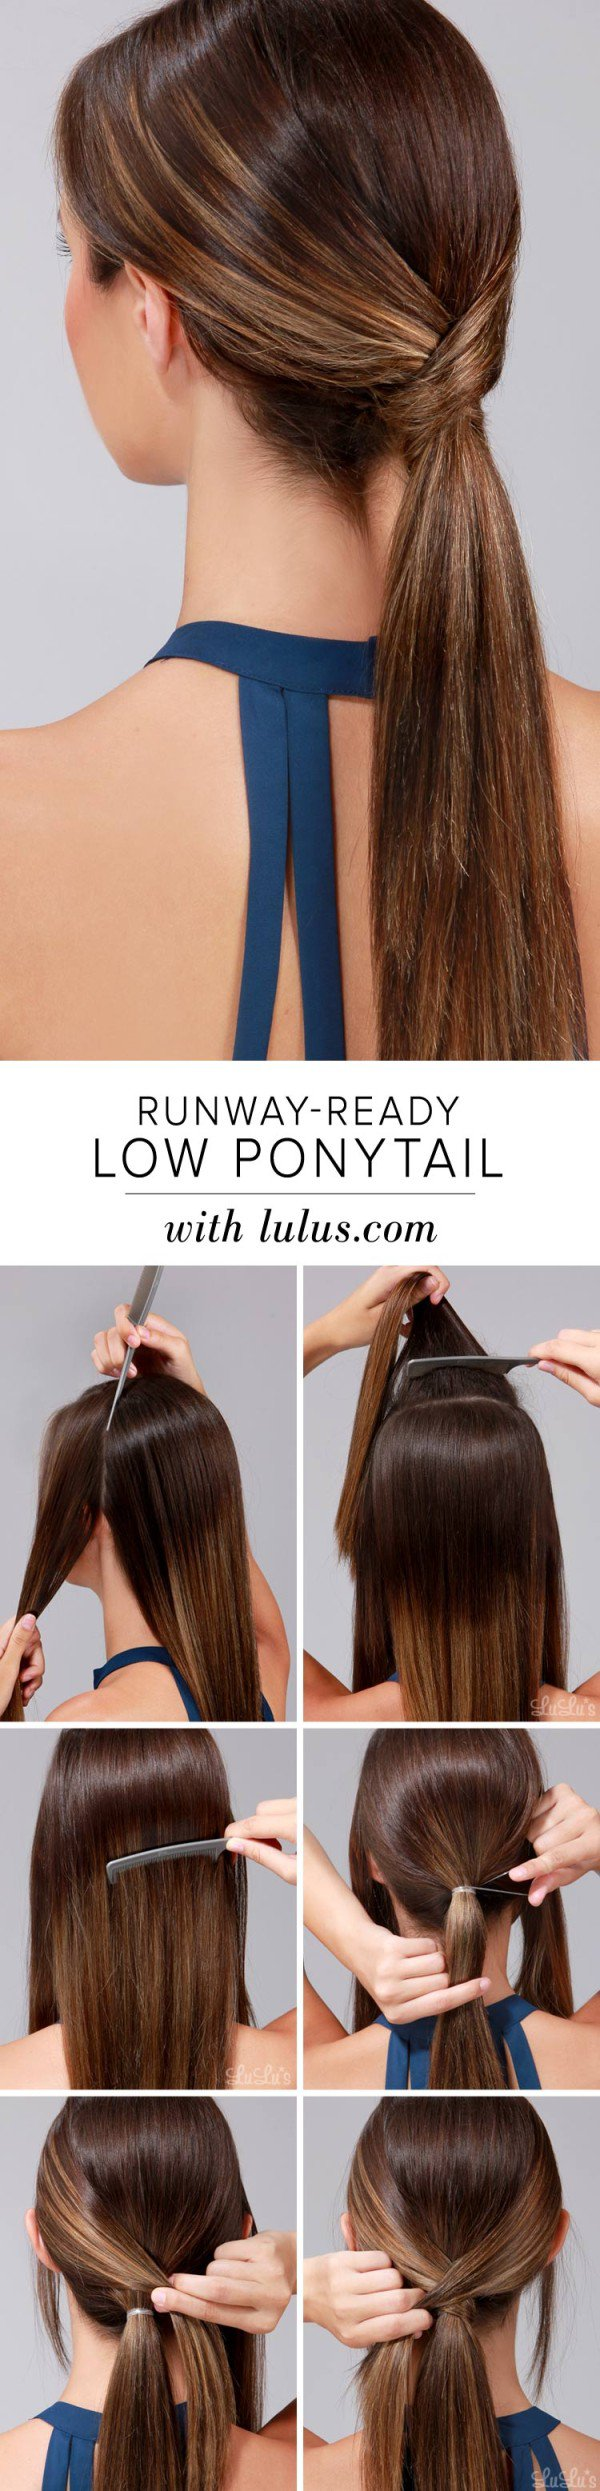 8 Amazing Ideas How To Make Simple But Dynamic Hairstyle That Attract Attention, In Only A Few Minutes